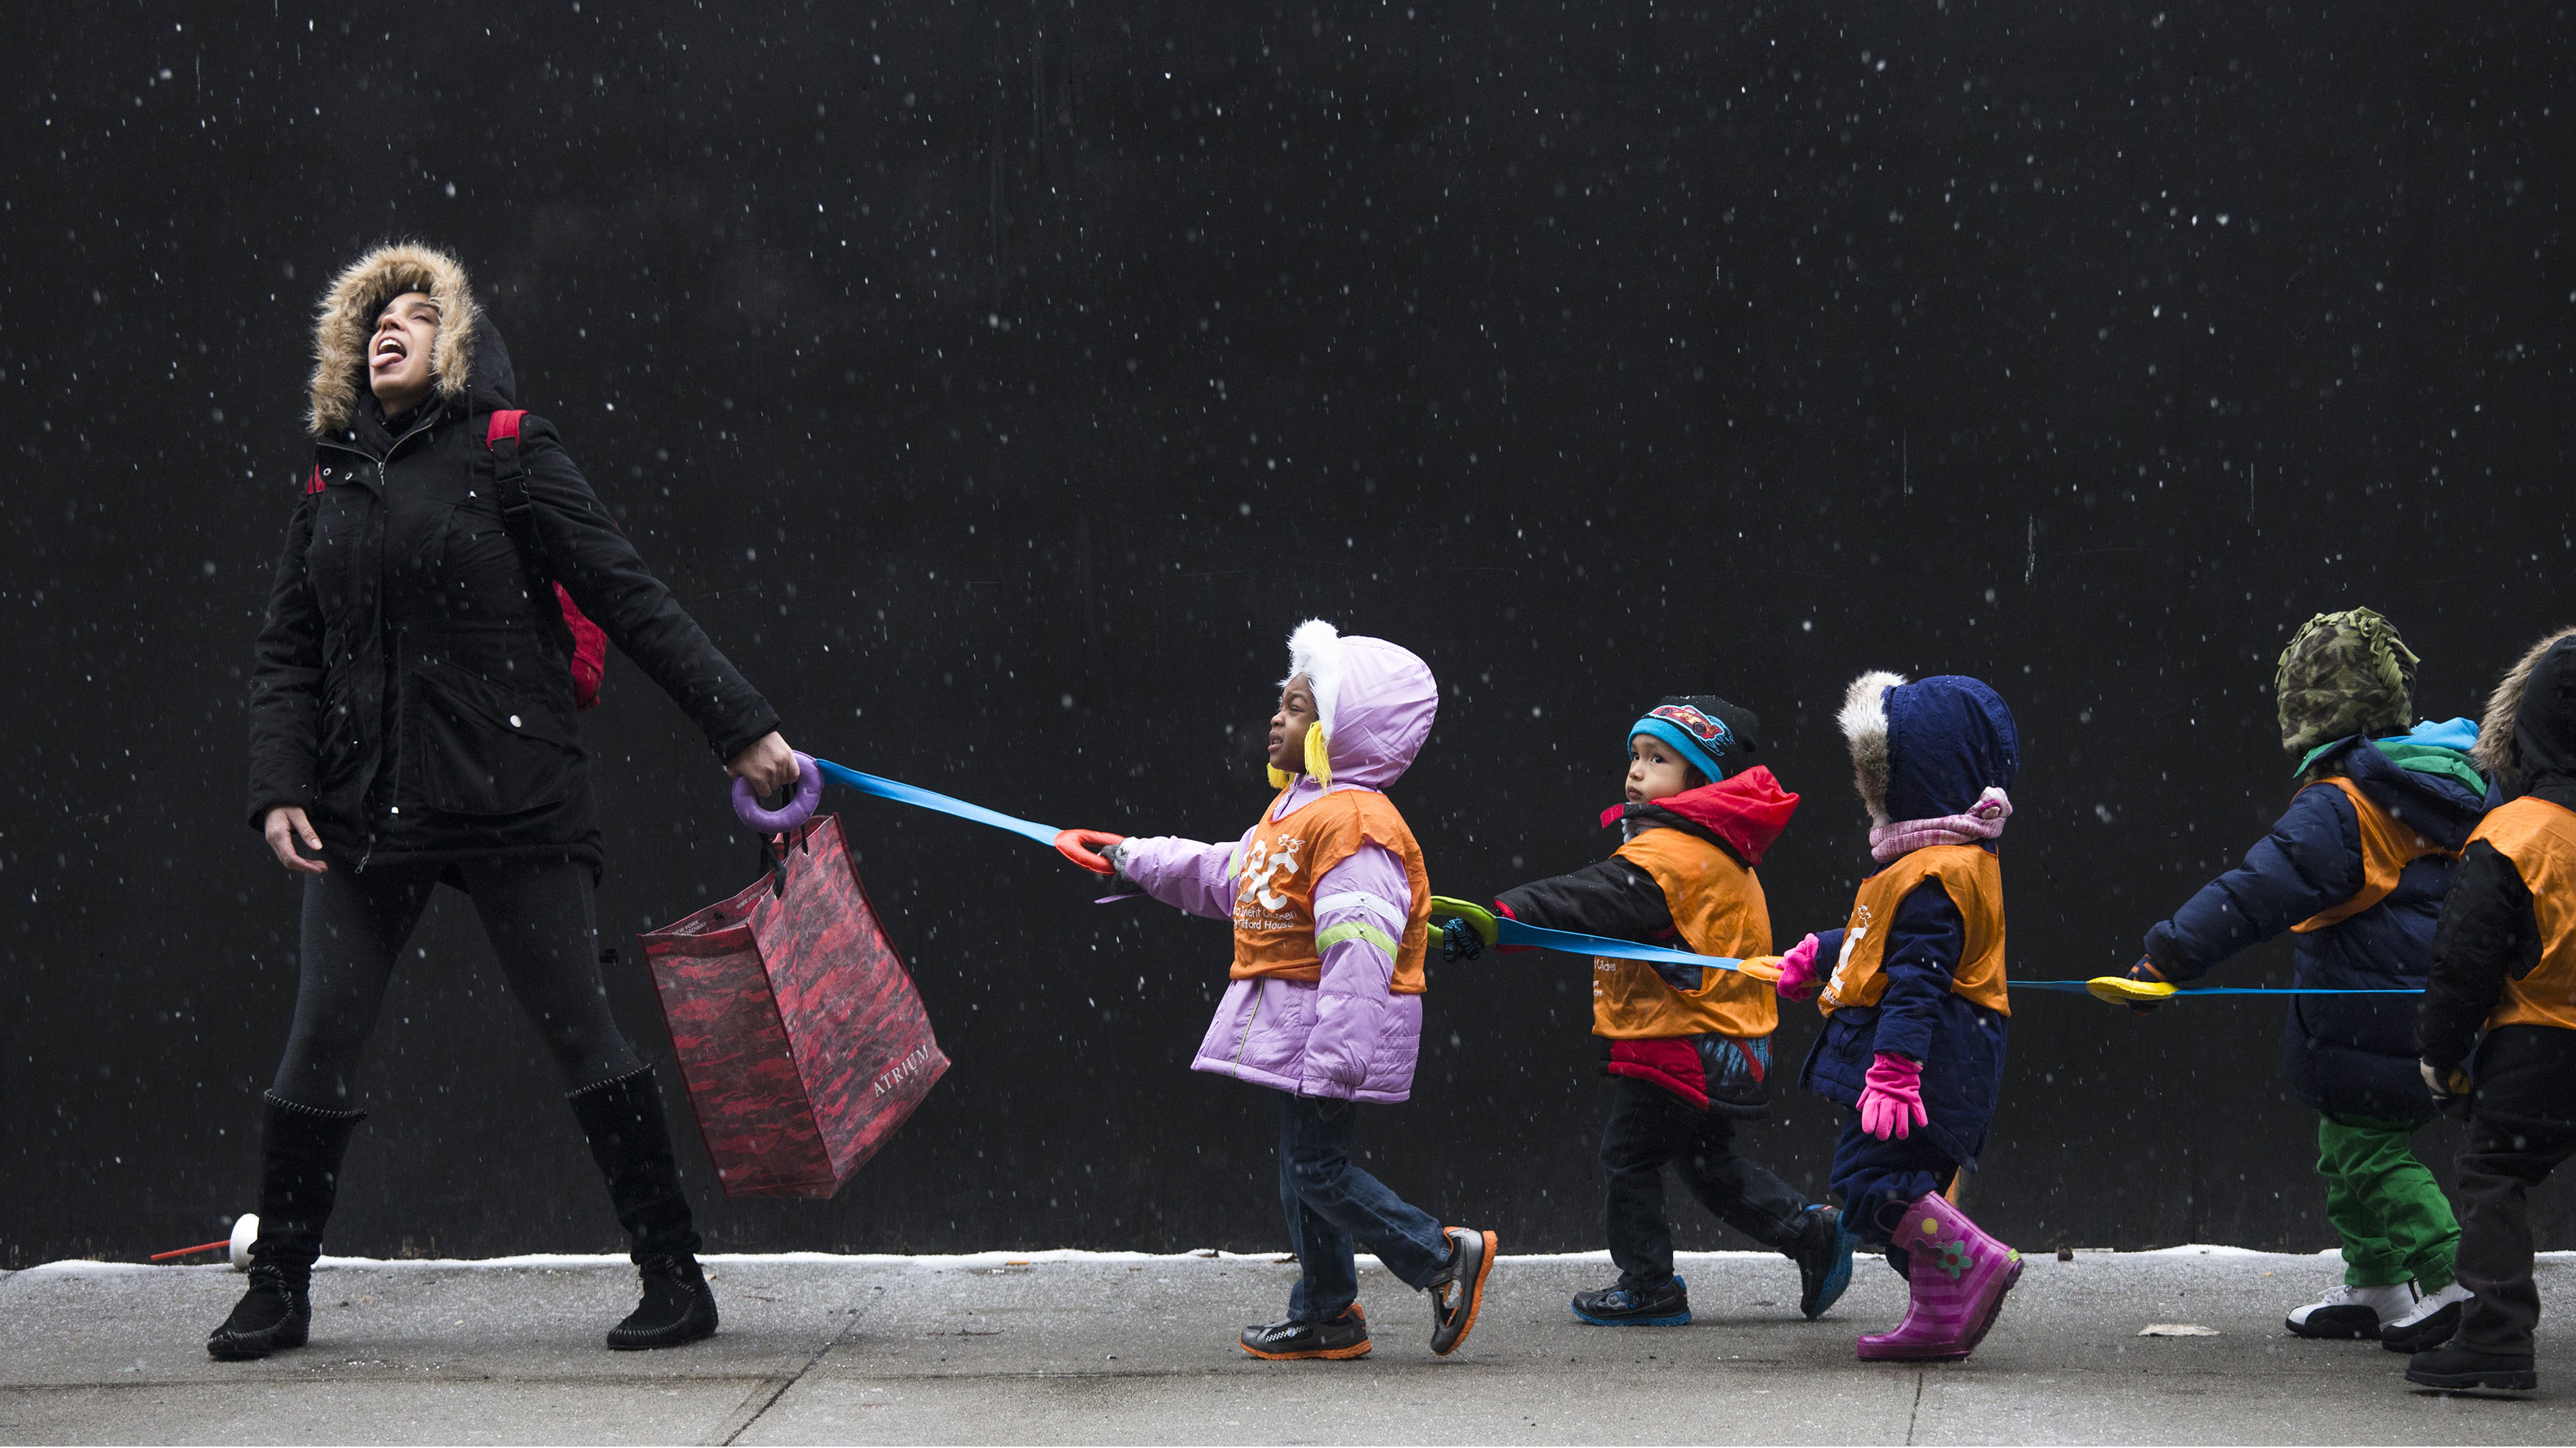 A schoolteacher, who wished to stay unidentified, attempts to catch snowflakes while leading her students to a library from school in the Harlem neighborhood, located in the Manhattan borough of New York on January 10, 2014.